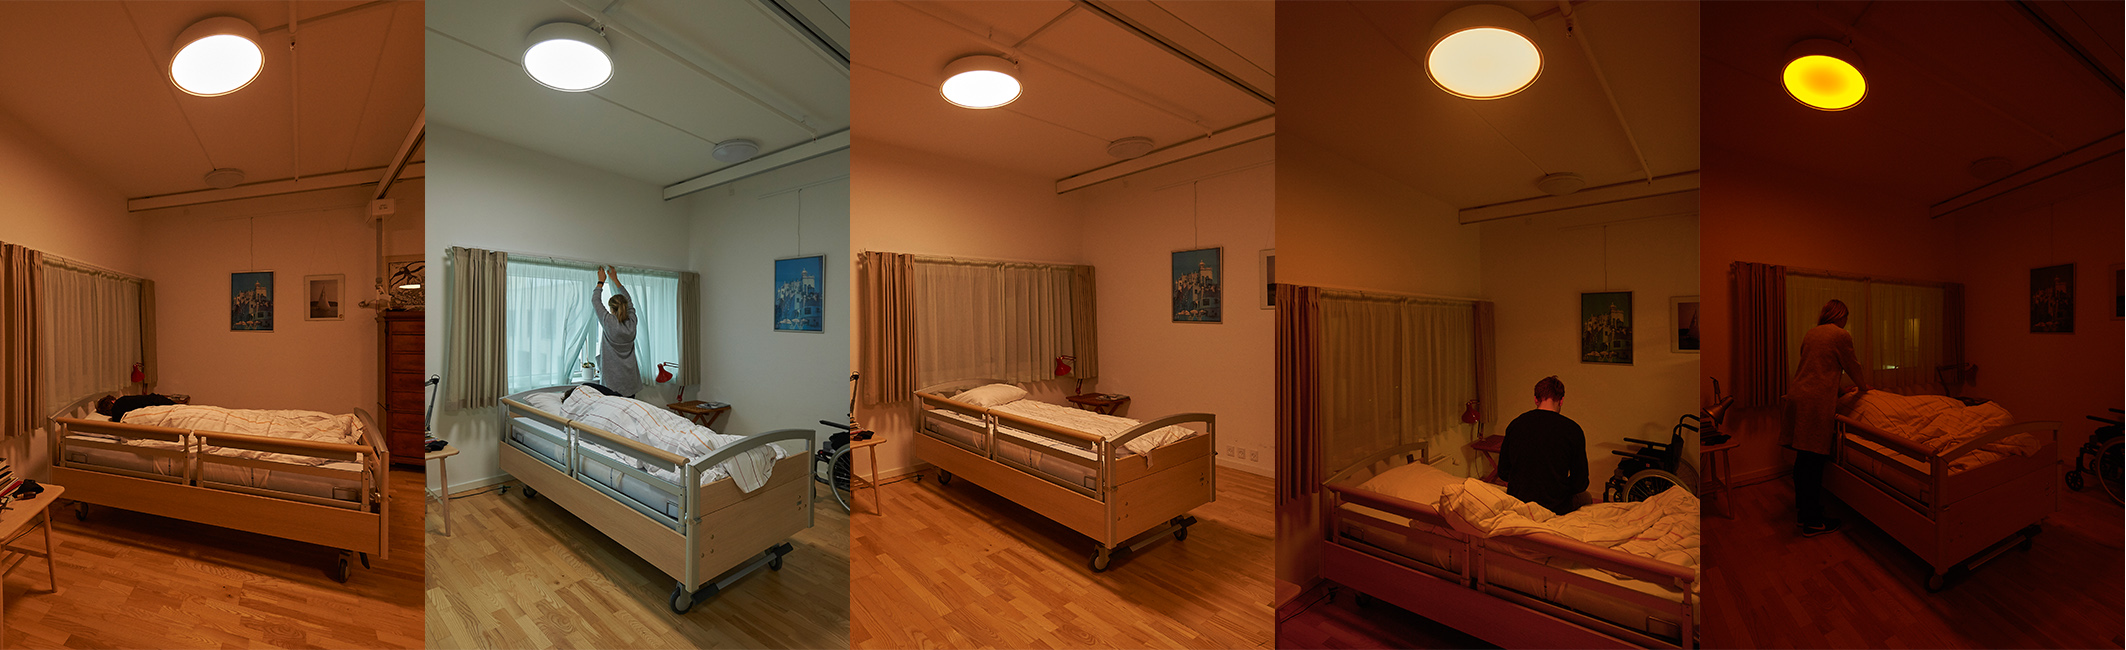 Effects of biological lighting